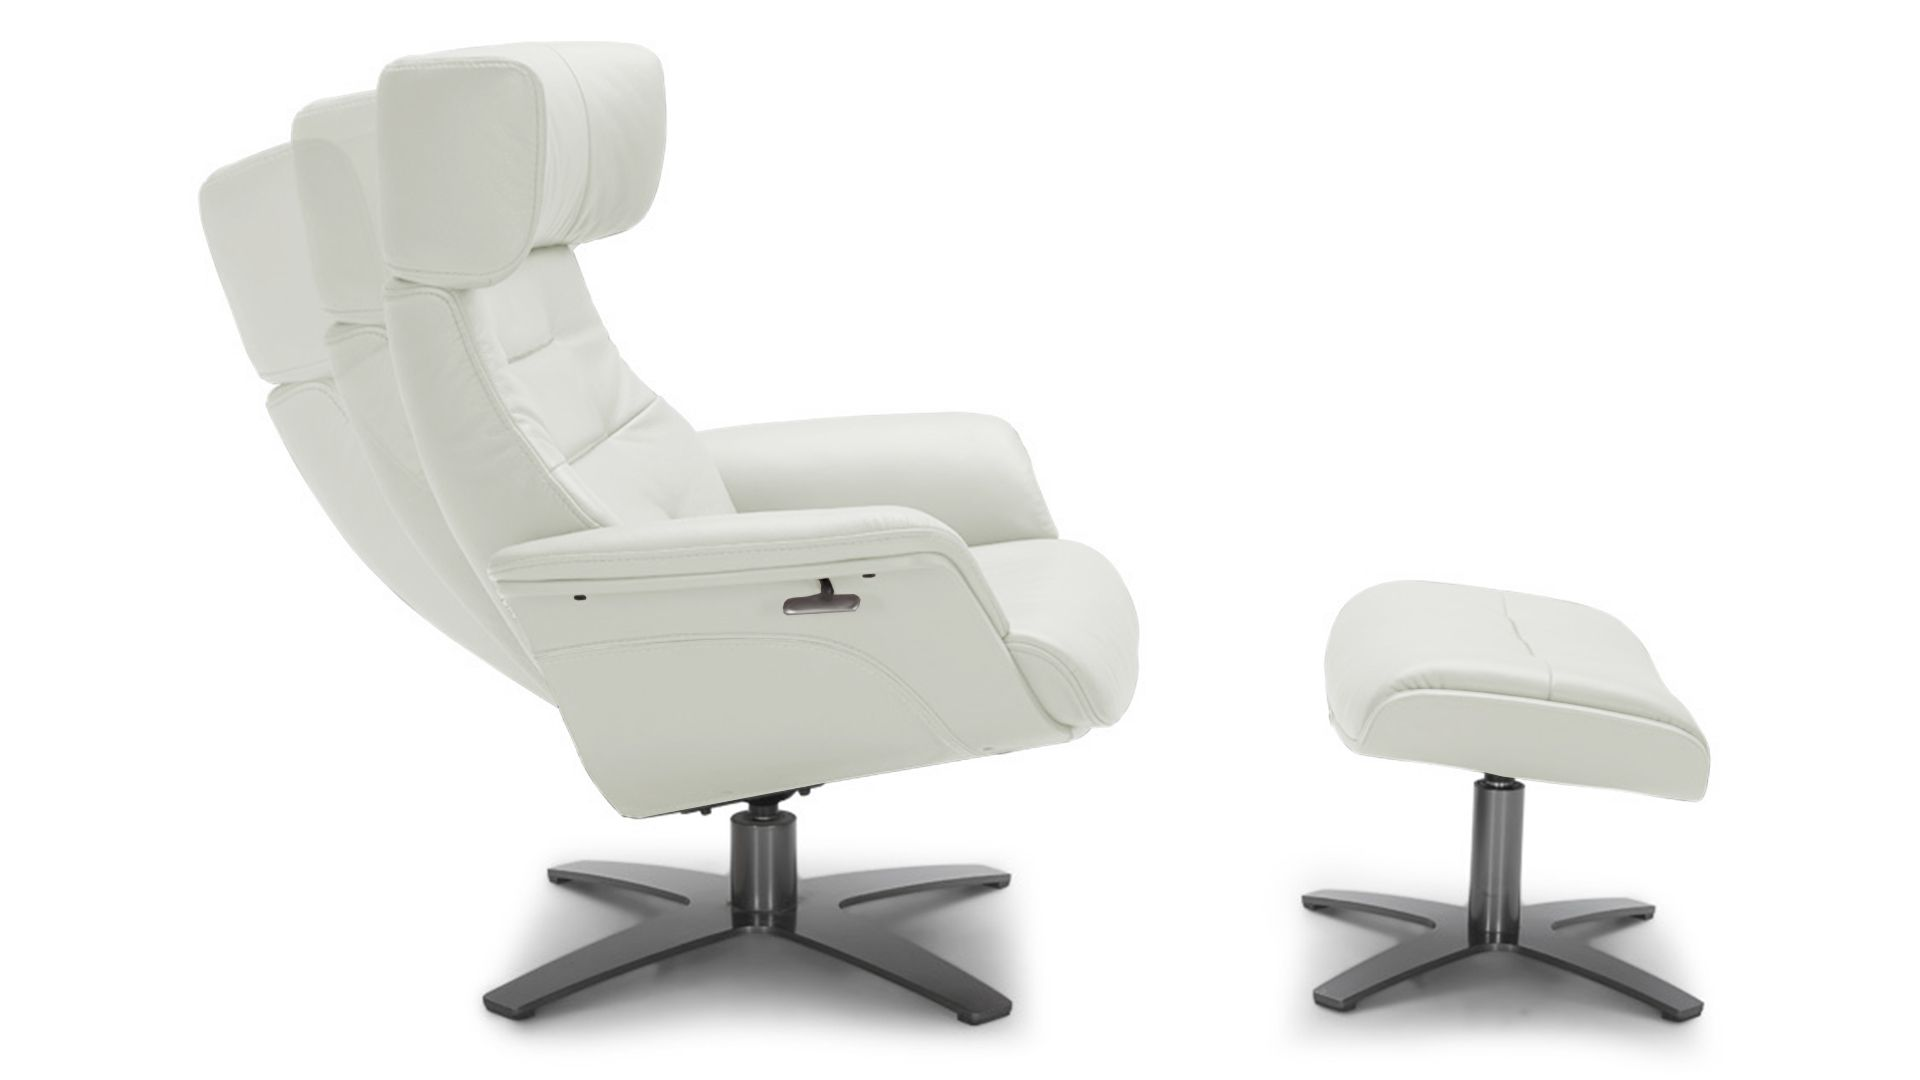 Fauteuil relax nclinable et pivotant Kumla Mobiliers